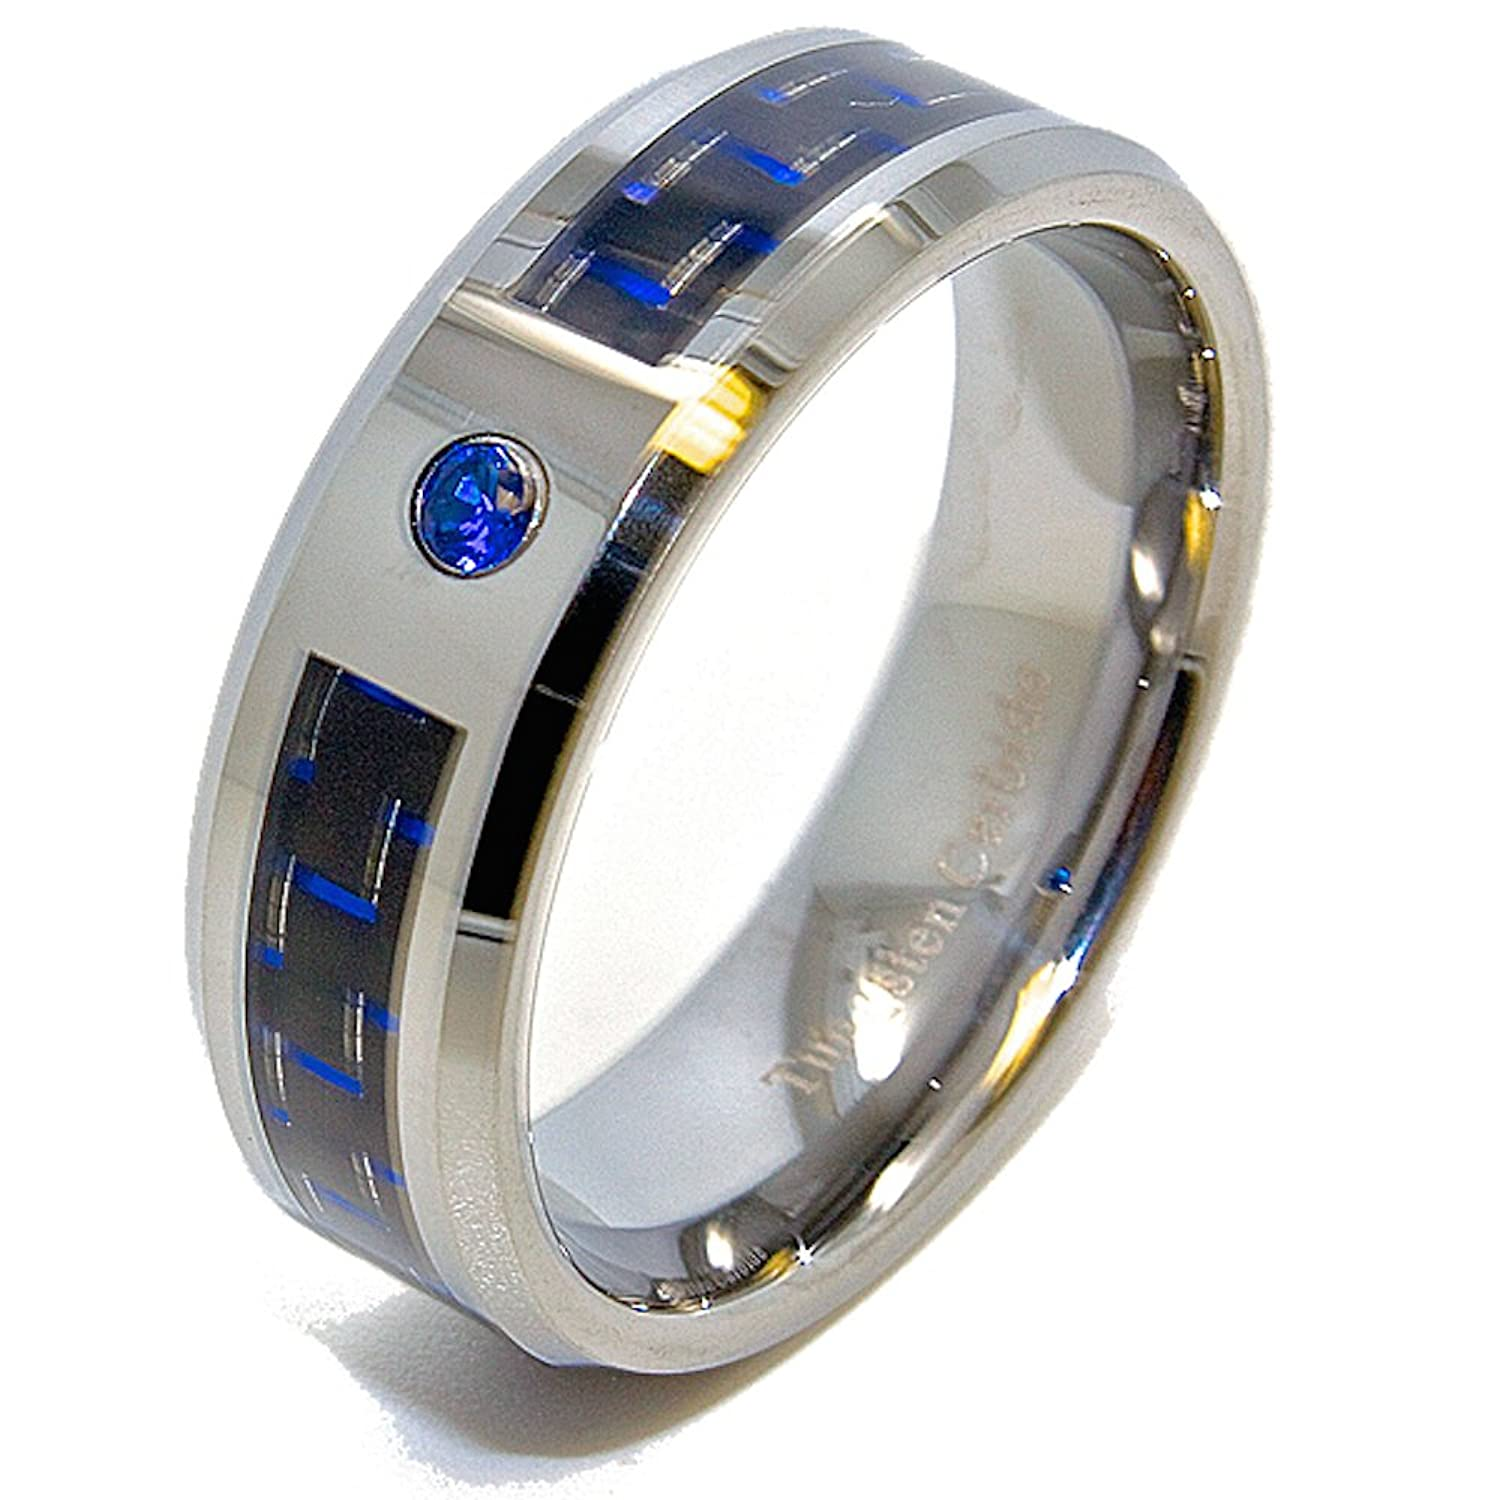 sapphire jewelry band dp stone anniversary amazon diamond collection round white blue com rings dazzlingrock gold stackable wedding